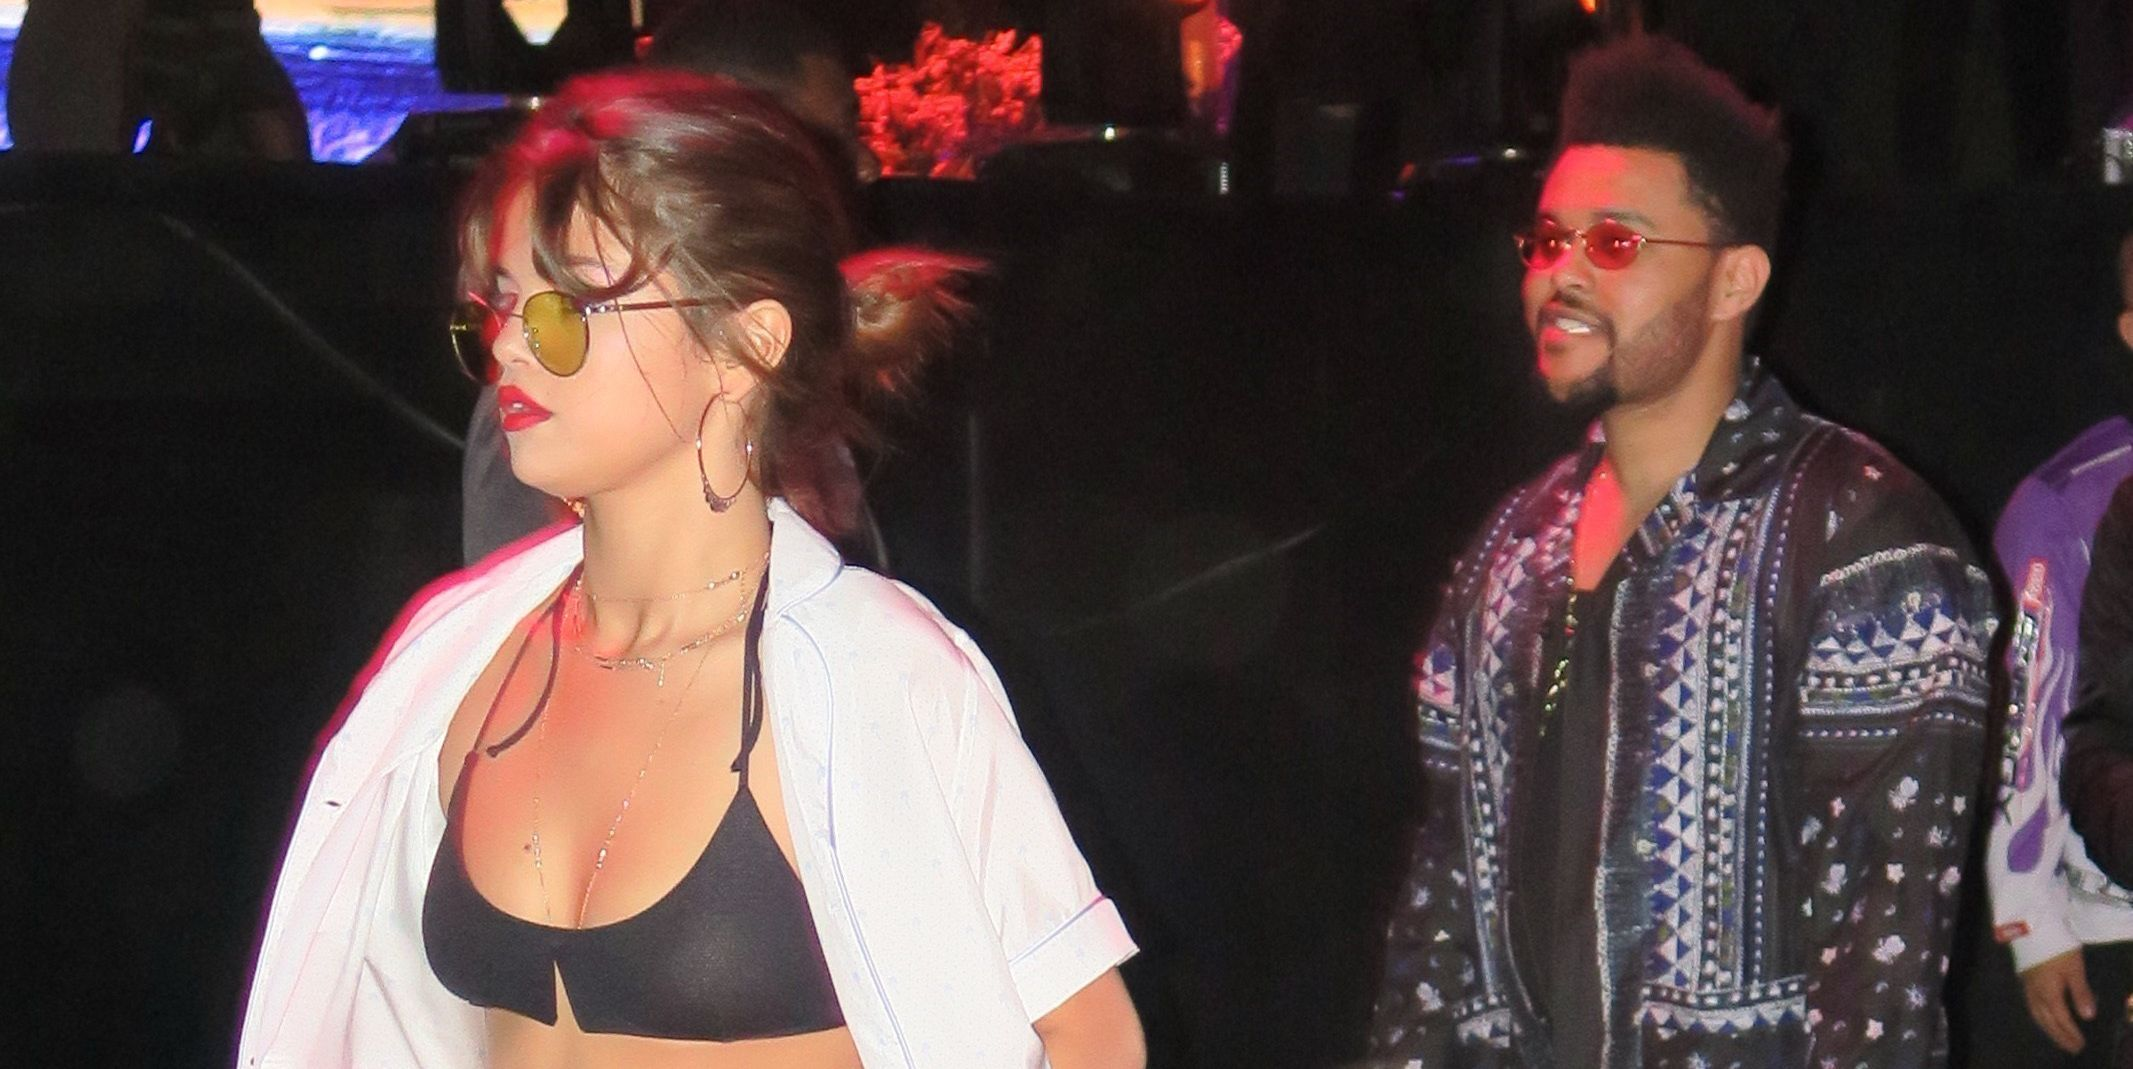 Selena Gomez and The Weeknd Are the Most Coachella Couple at Coachella